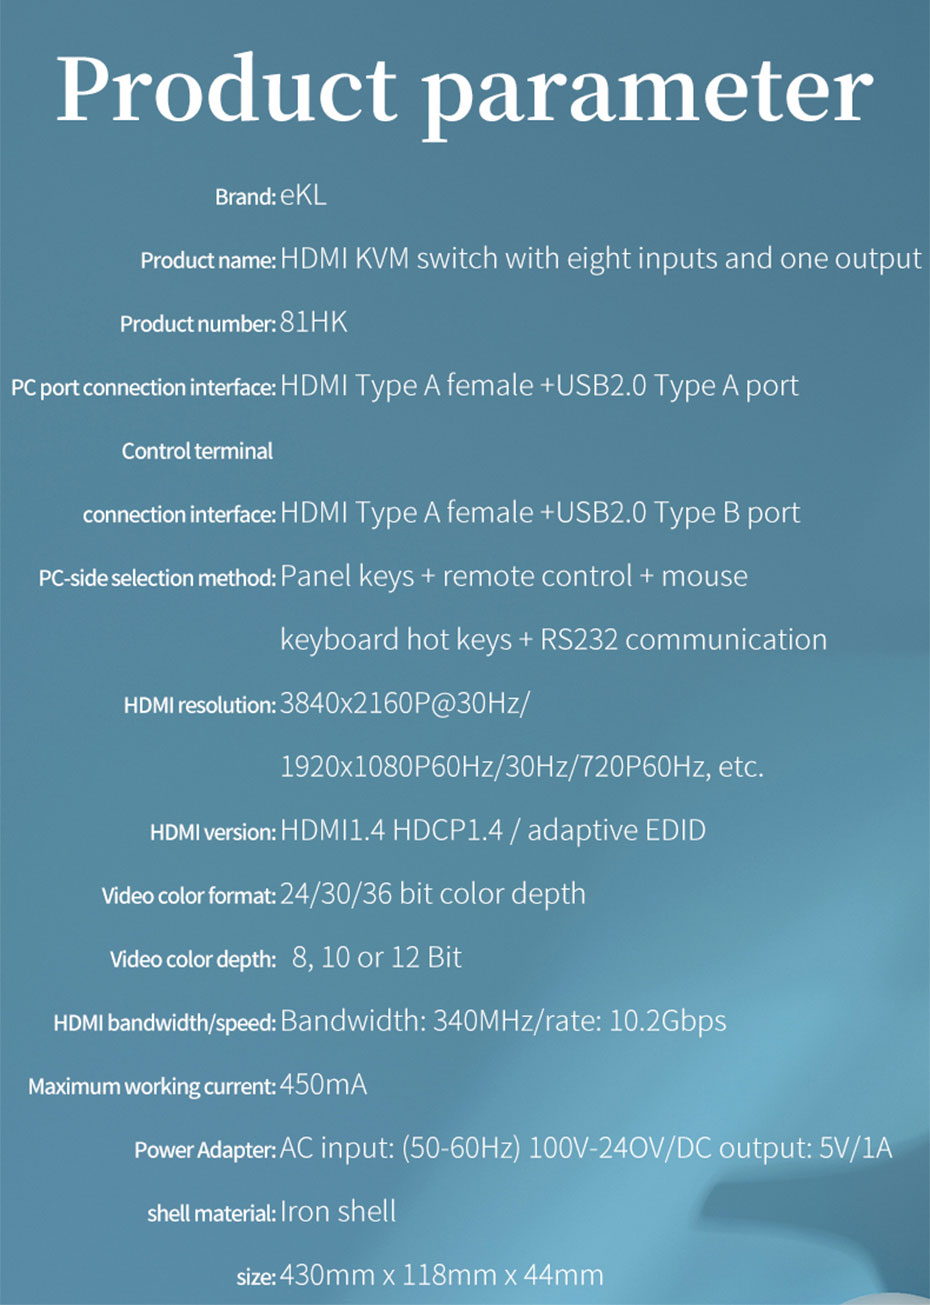 HDMI KVM switch 8 in 1 out 81HK specifications